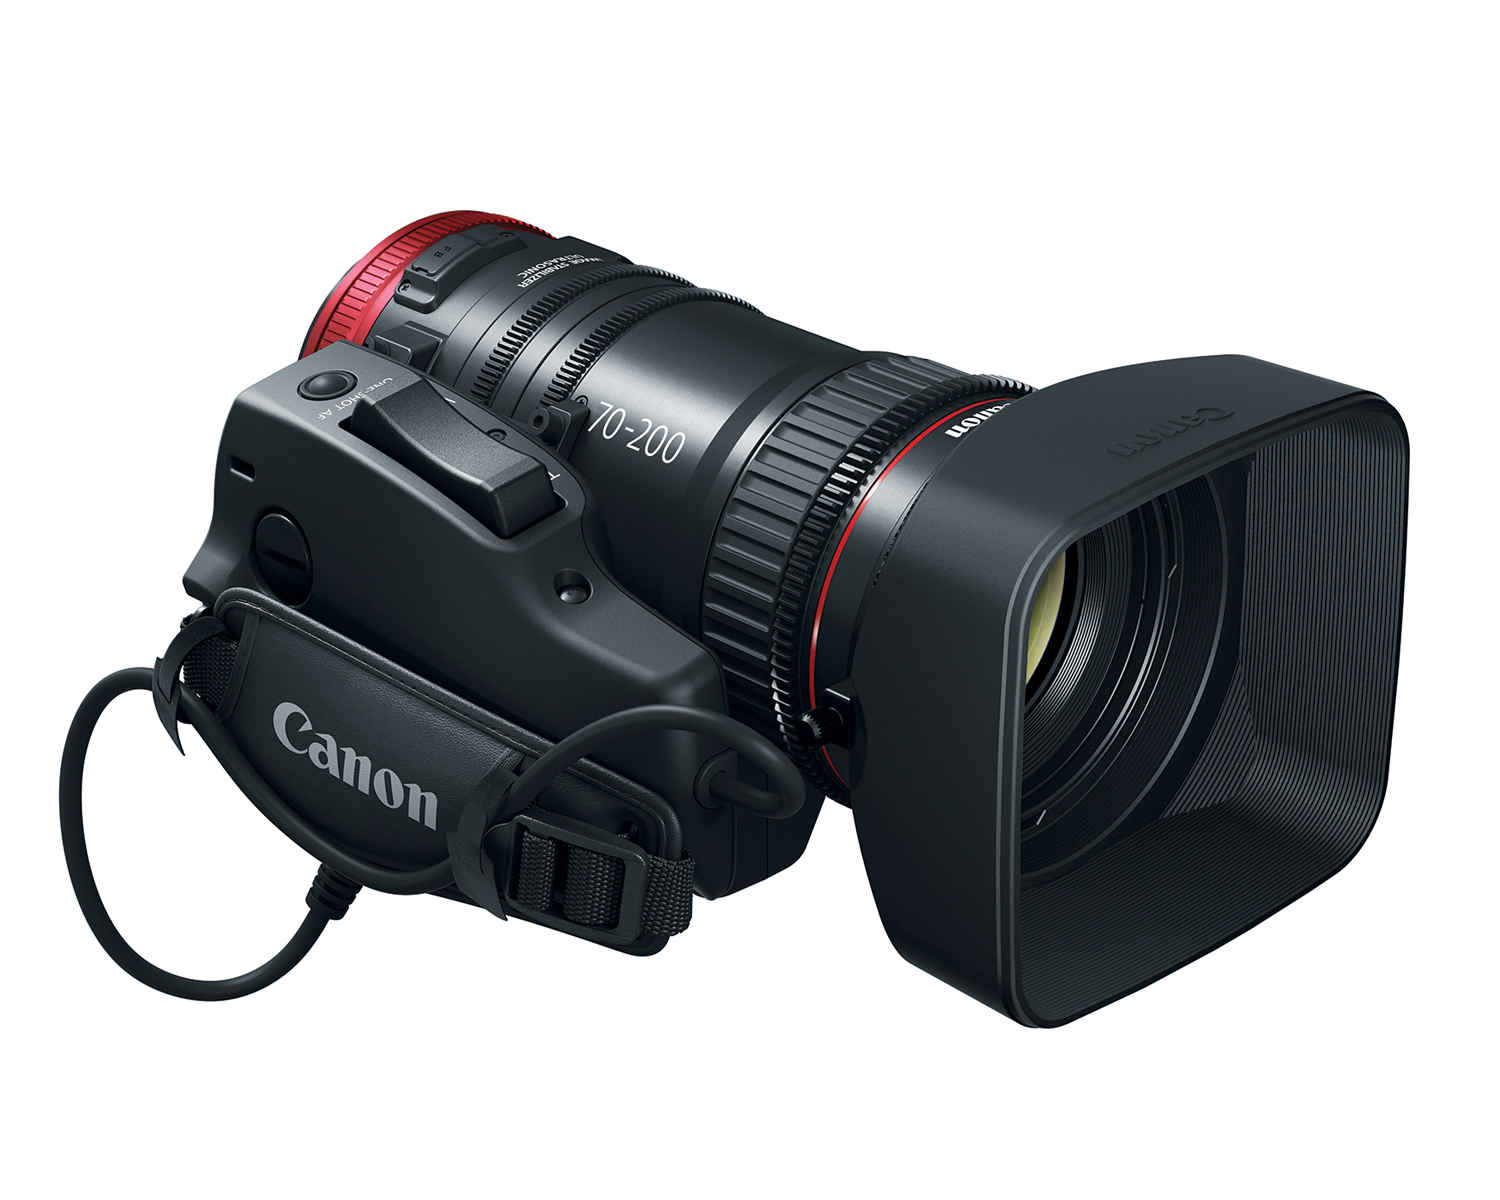 Canon Announce CN-E 70-200mm T4.4 L IS KAS S Cinema Lens